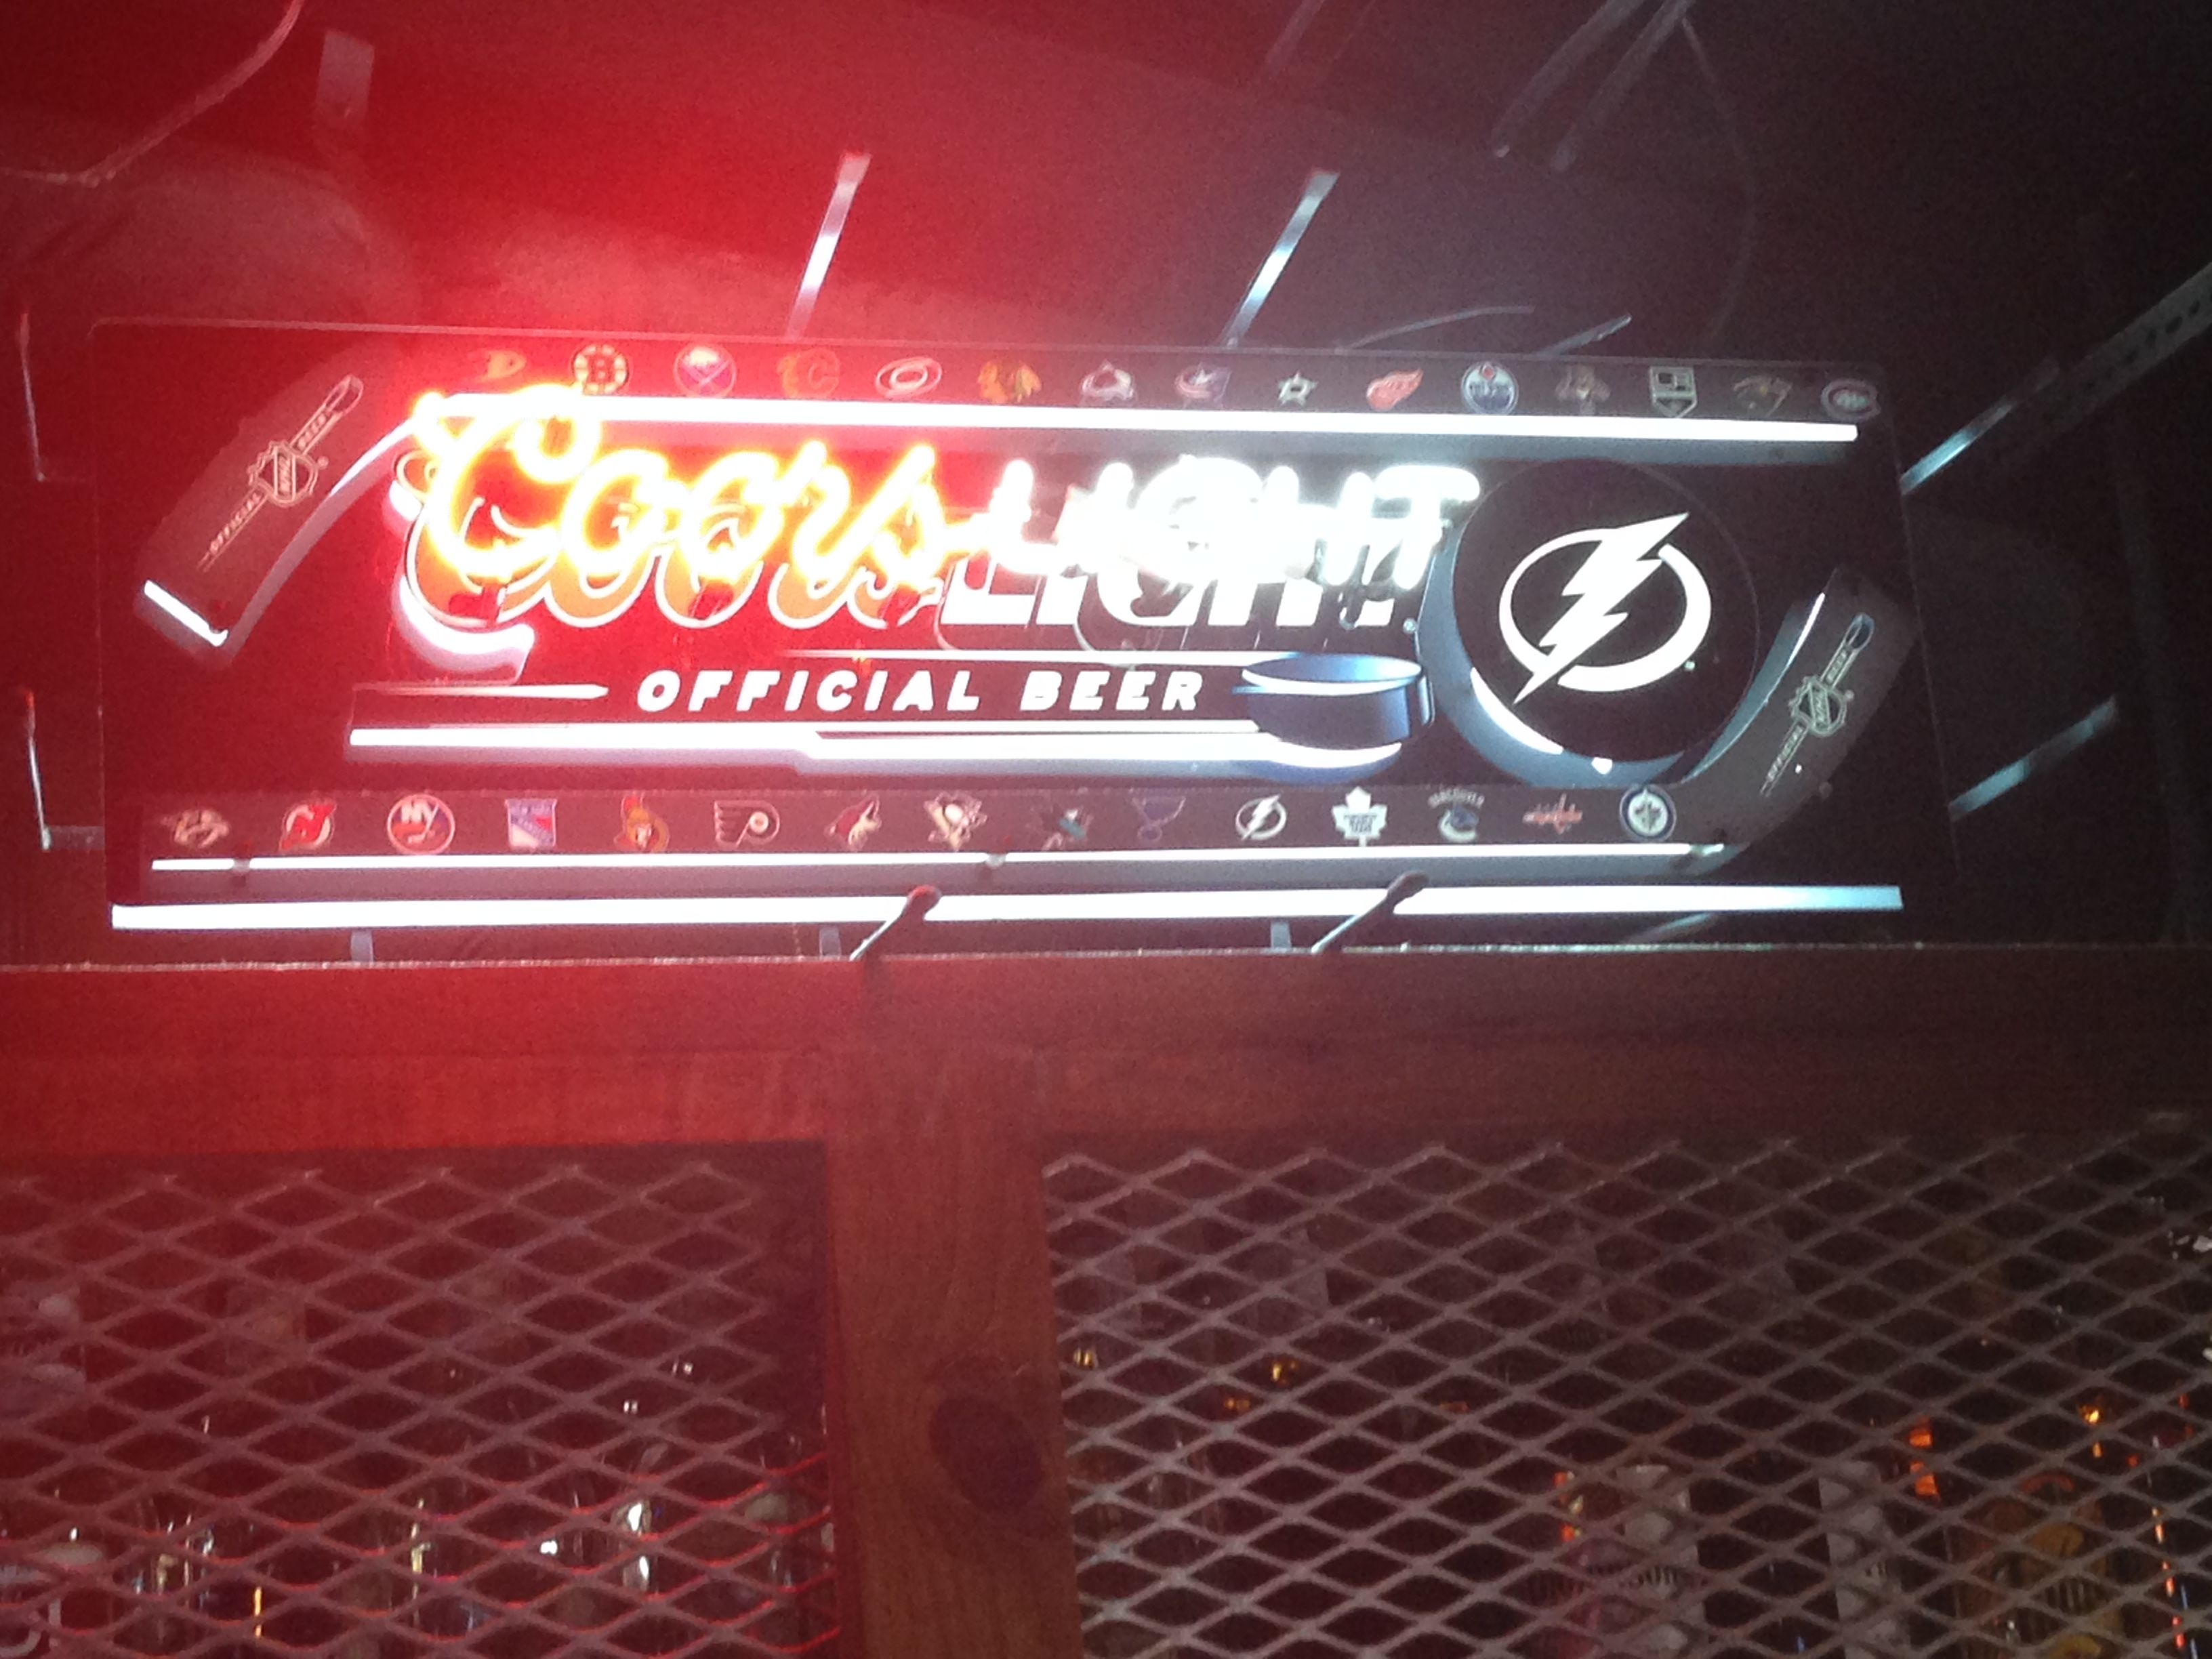 Neon beer sign tampa bay lightning coors light nhl neon beer sign tampa bay lightning coors light nhl aloadofball Images